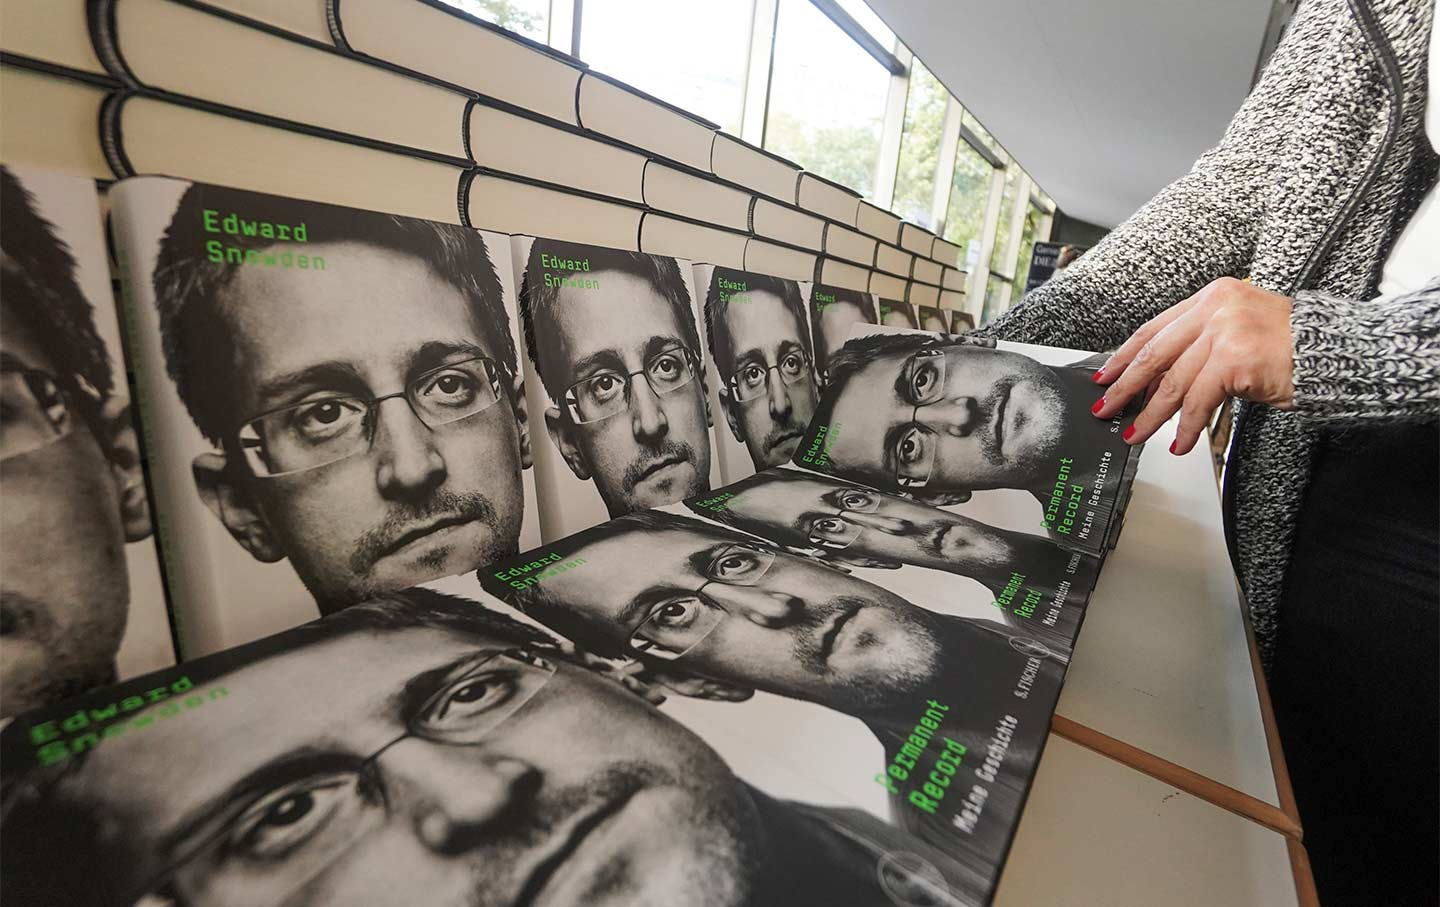 Edward Snowden is a 2020 Election Issue